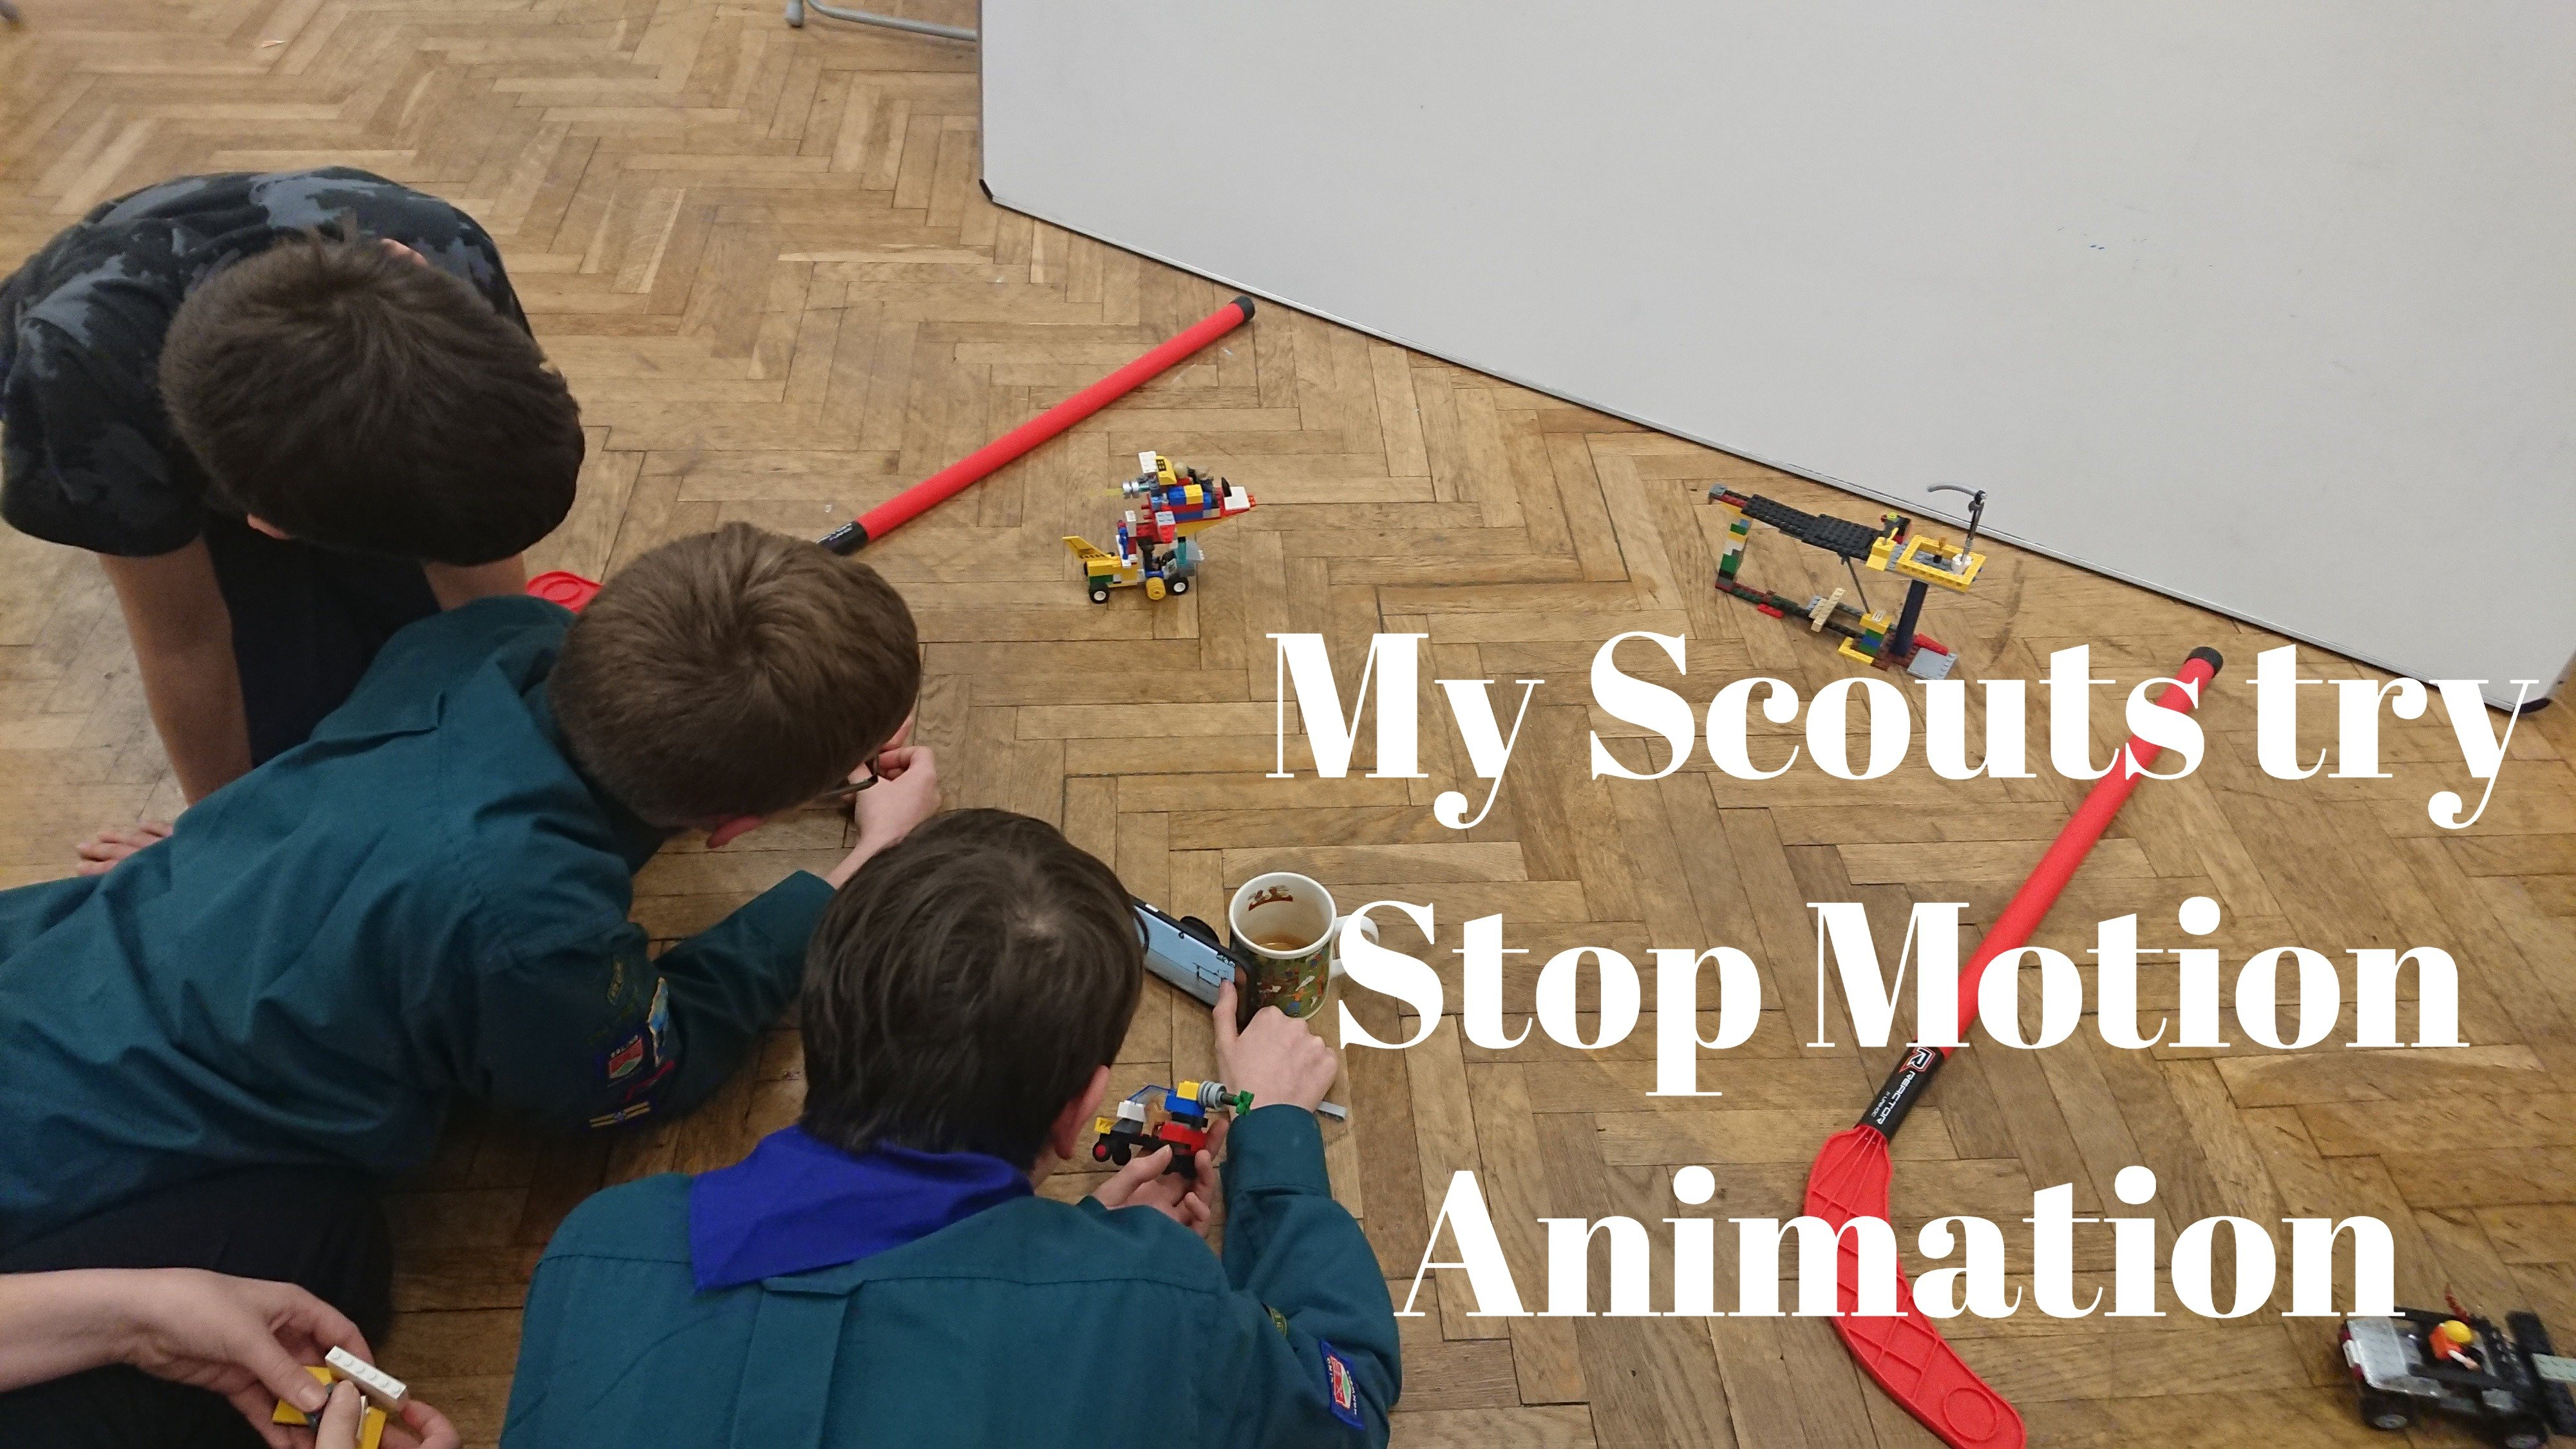 Wallace & Gromit vs My Scouts